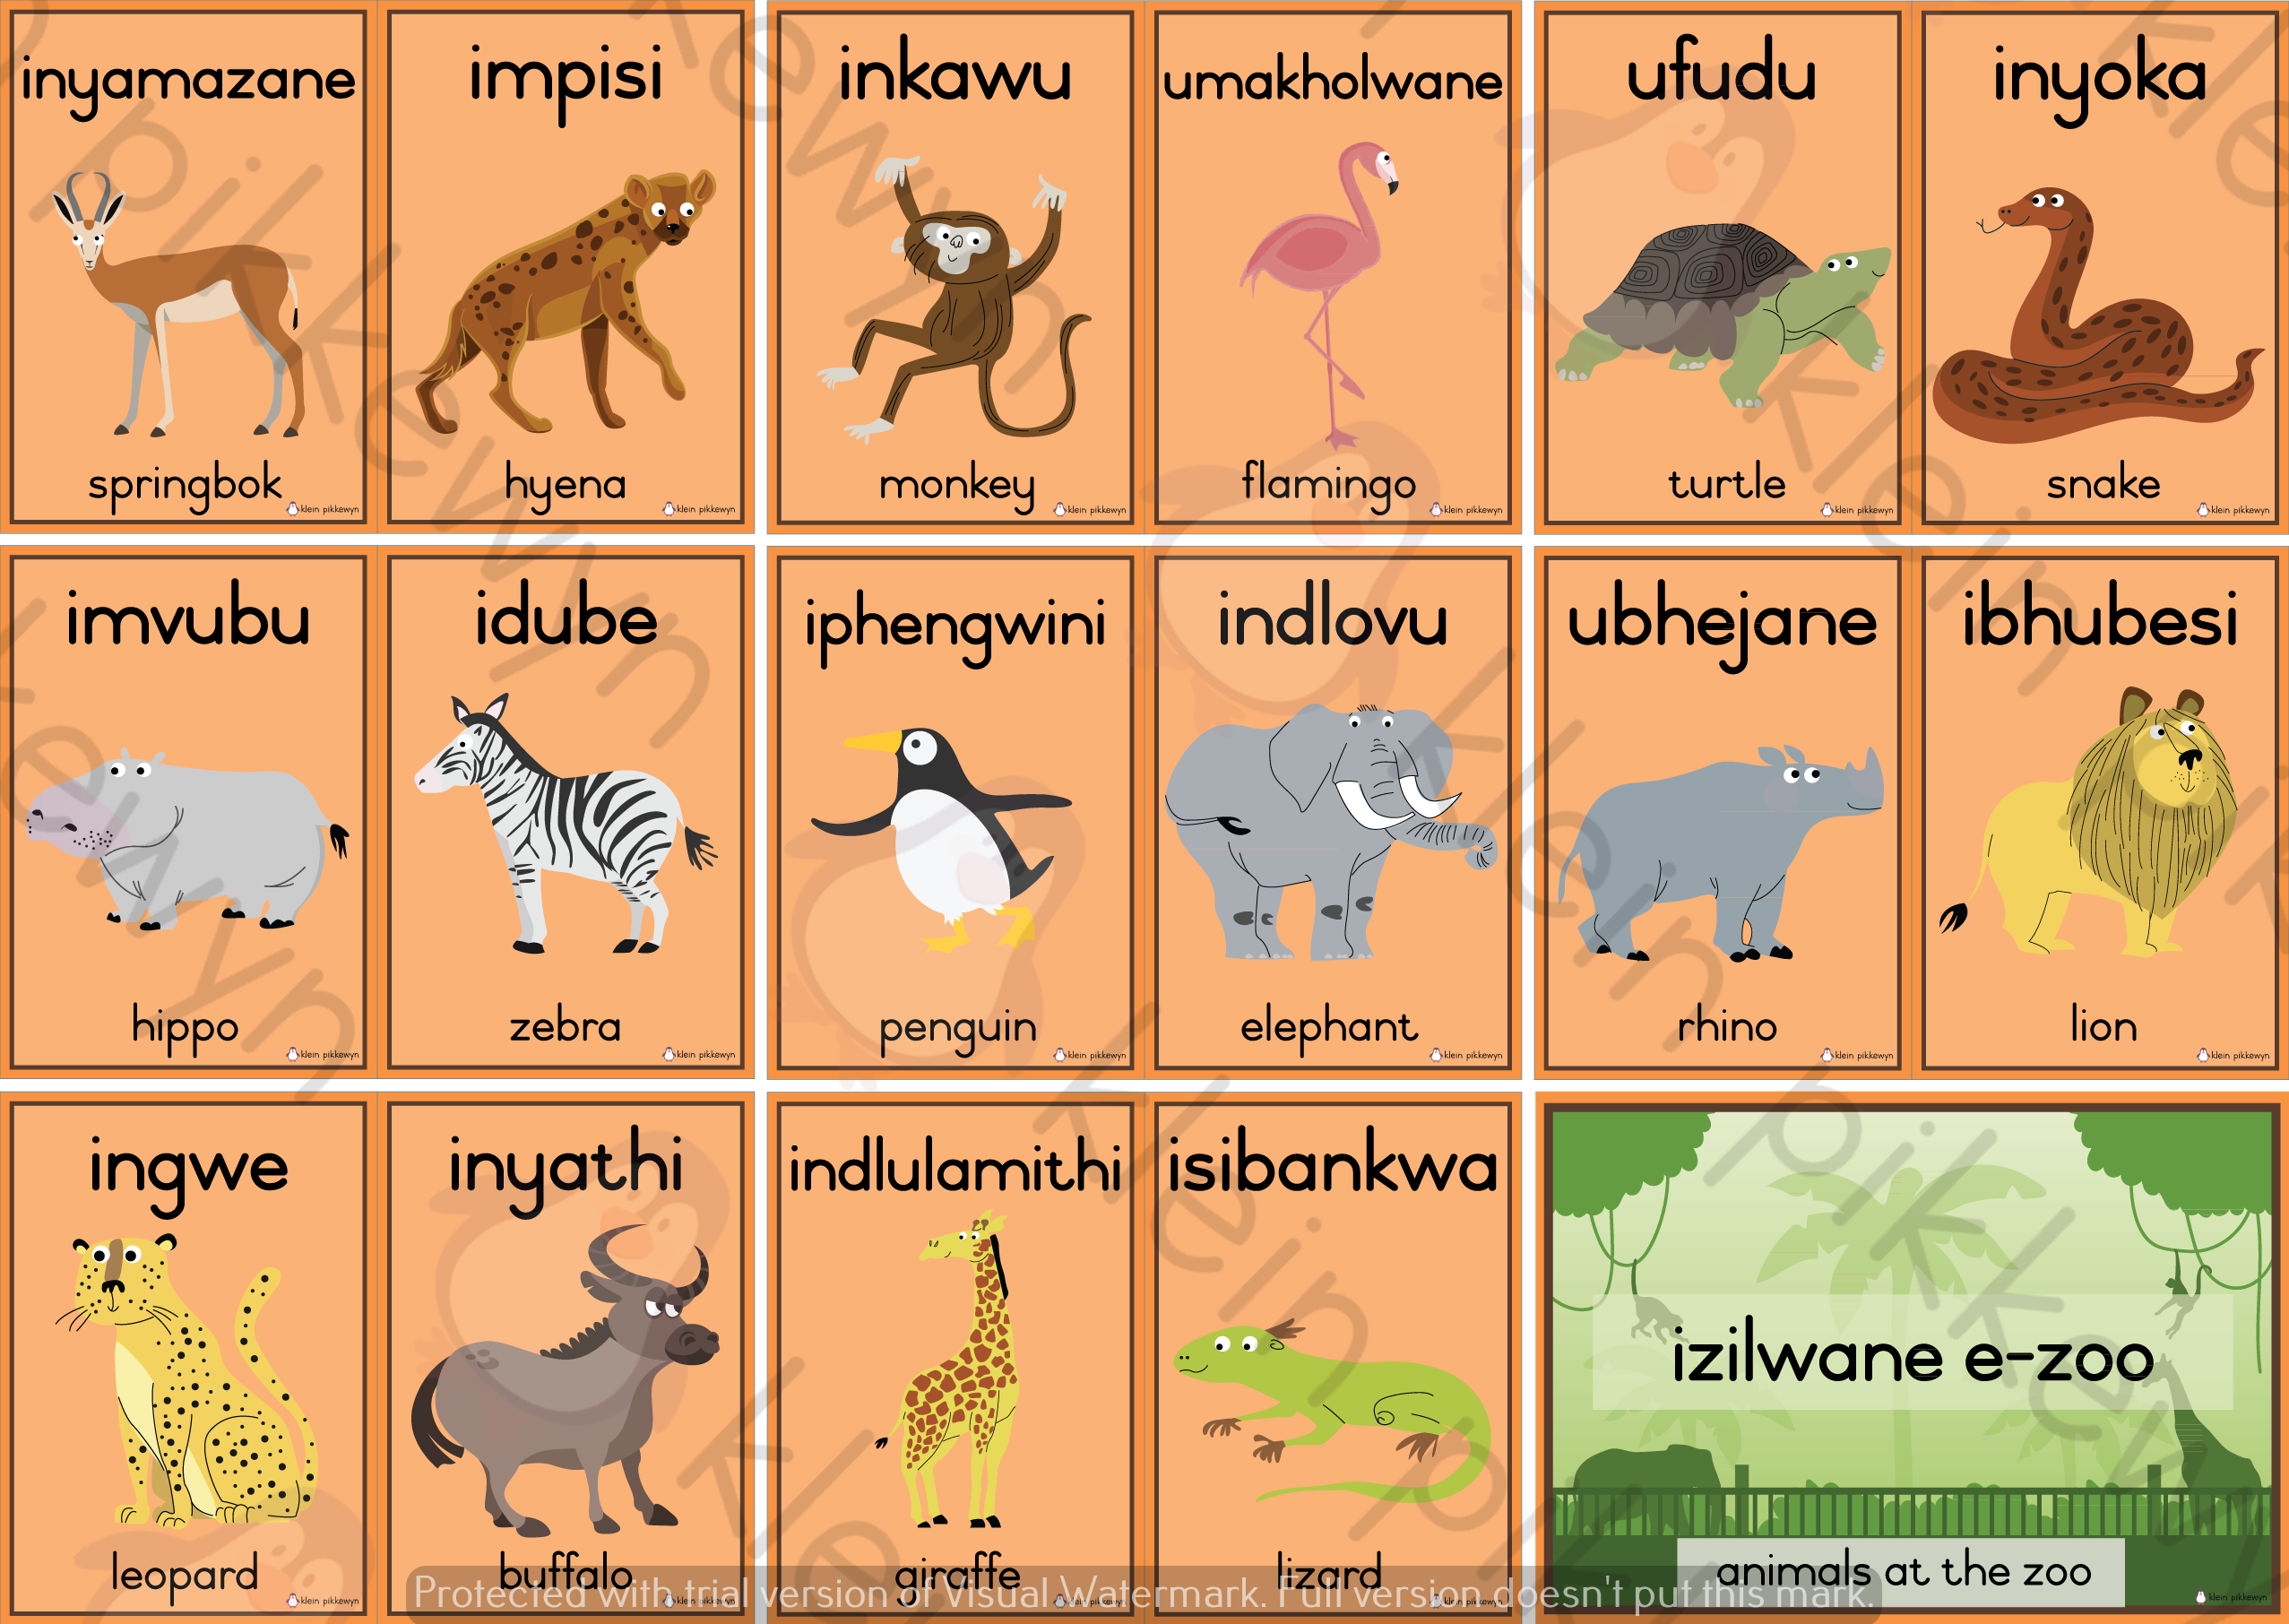 Isizulu Eng Izilwane E Zoo Zoo Animals Zoo Animals Zulu Language Animals